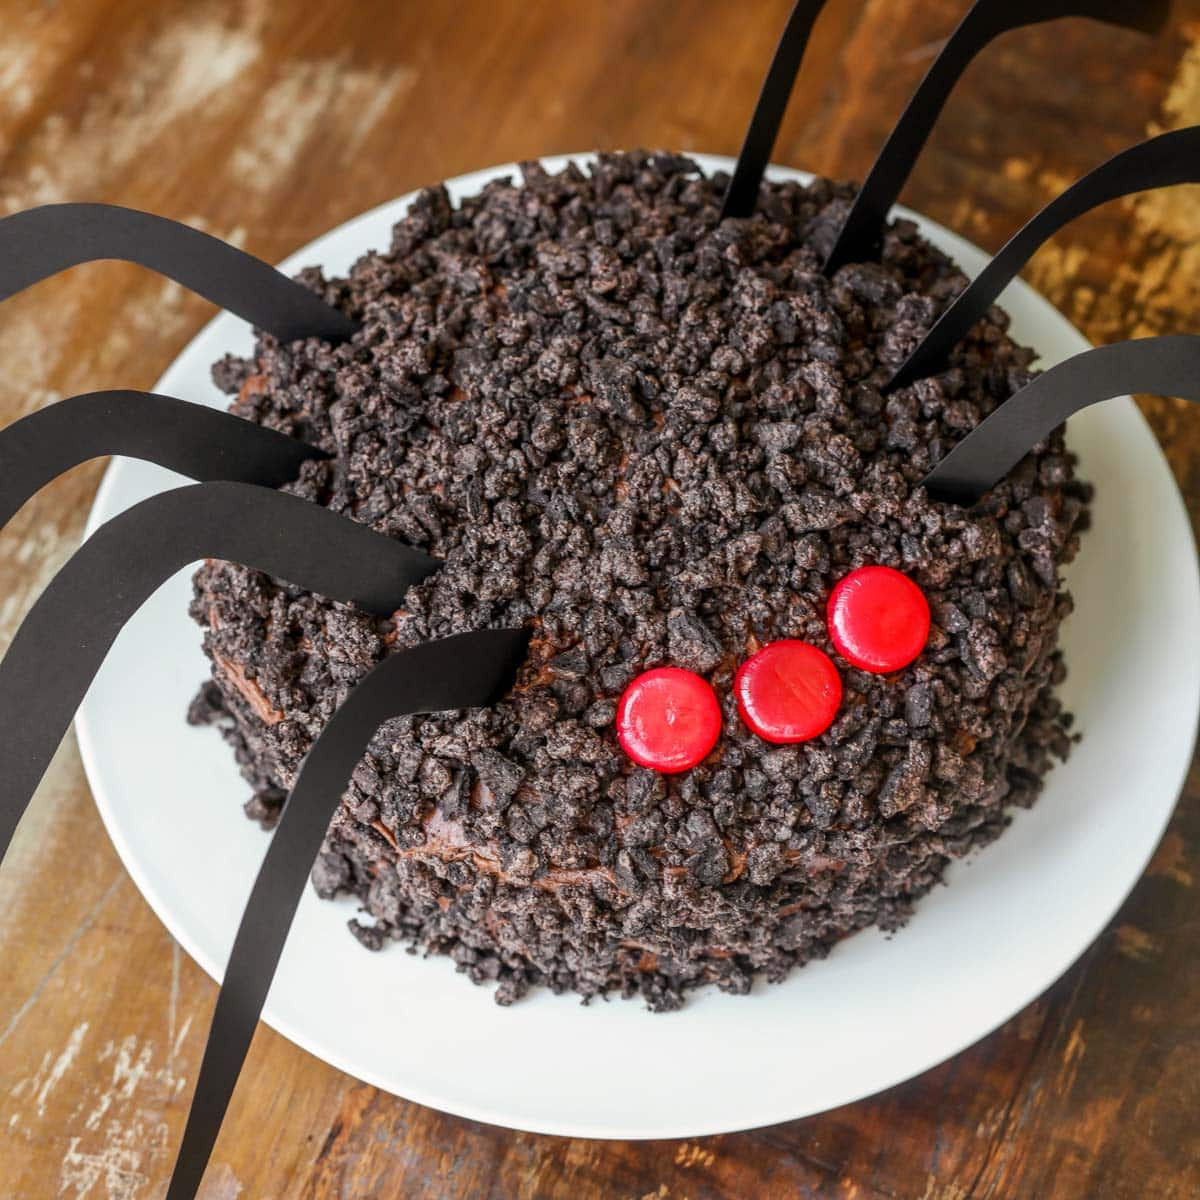 Chocolate Oreo spider cake with cinnamon eyes on a white plate